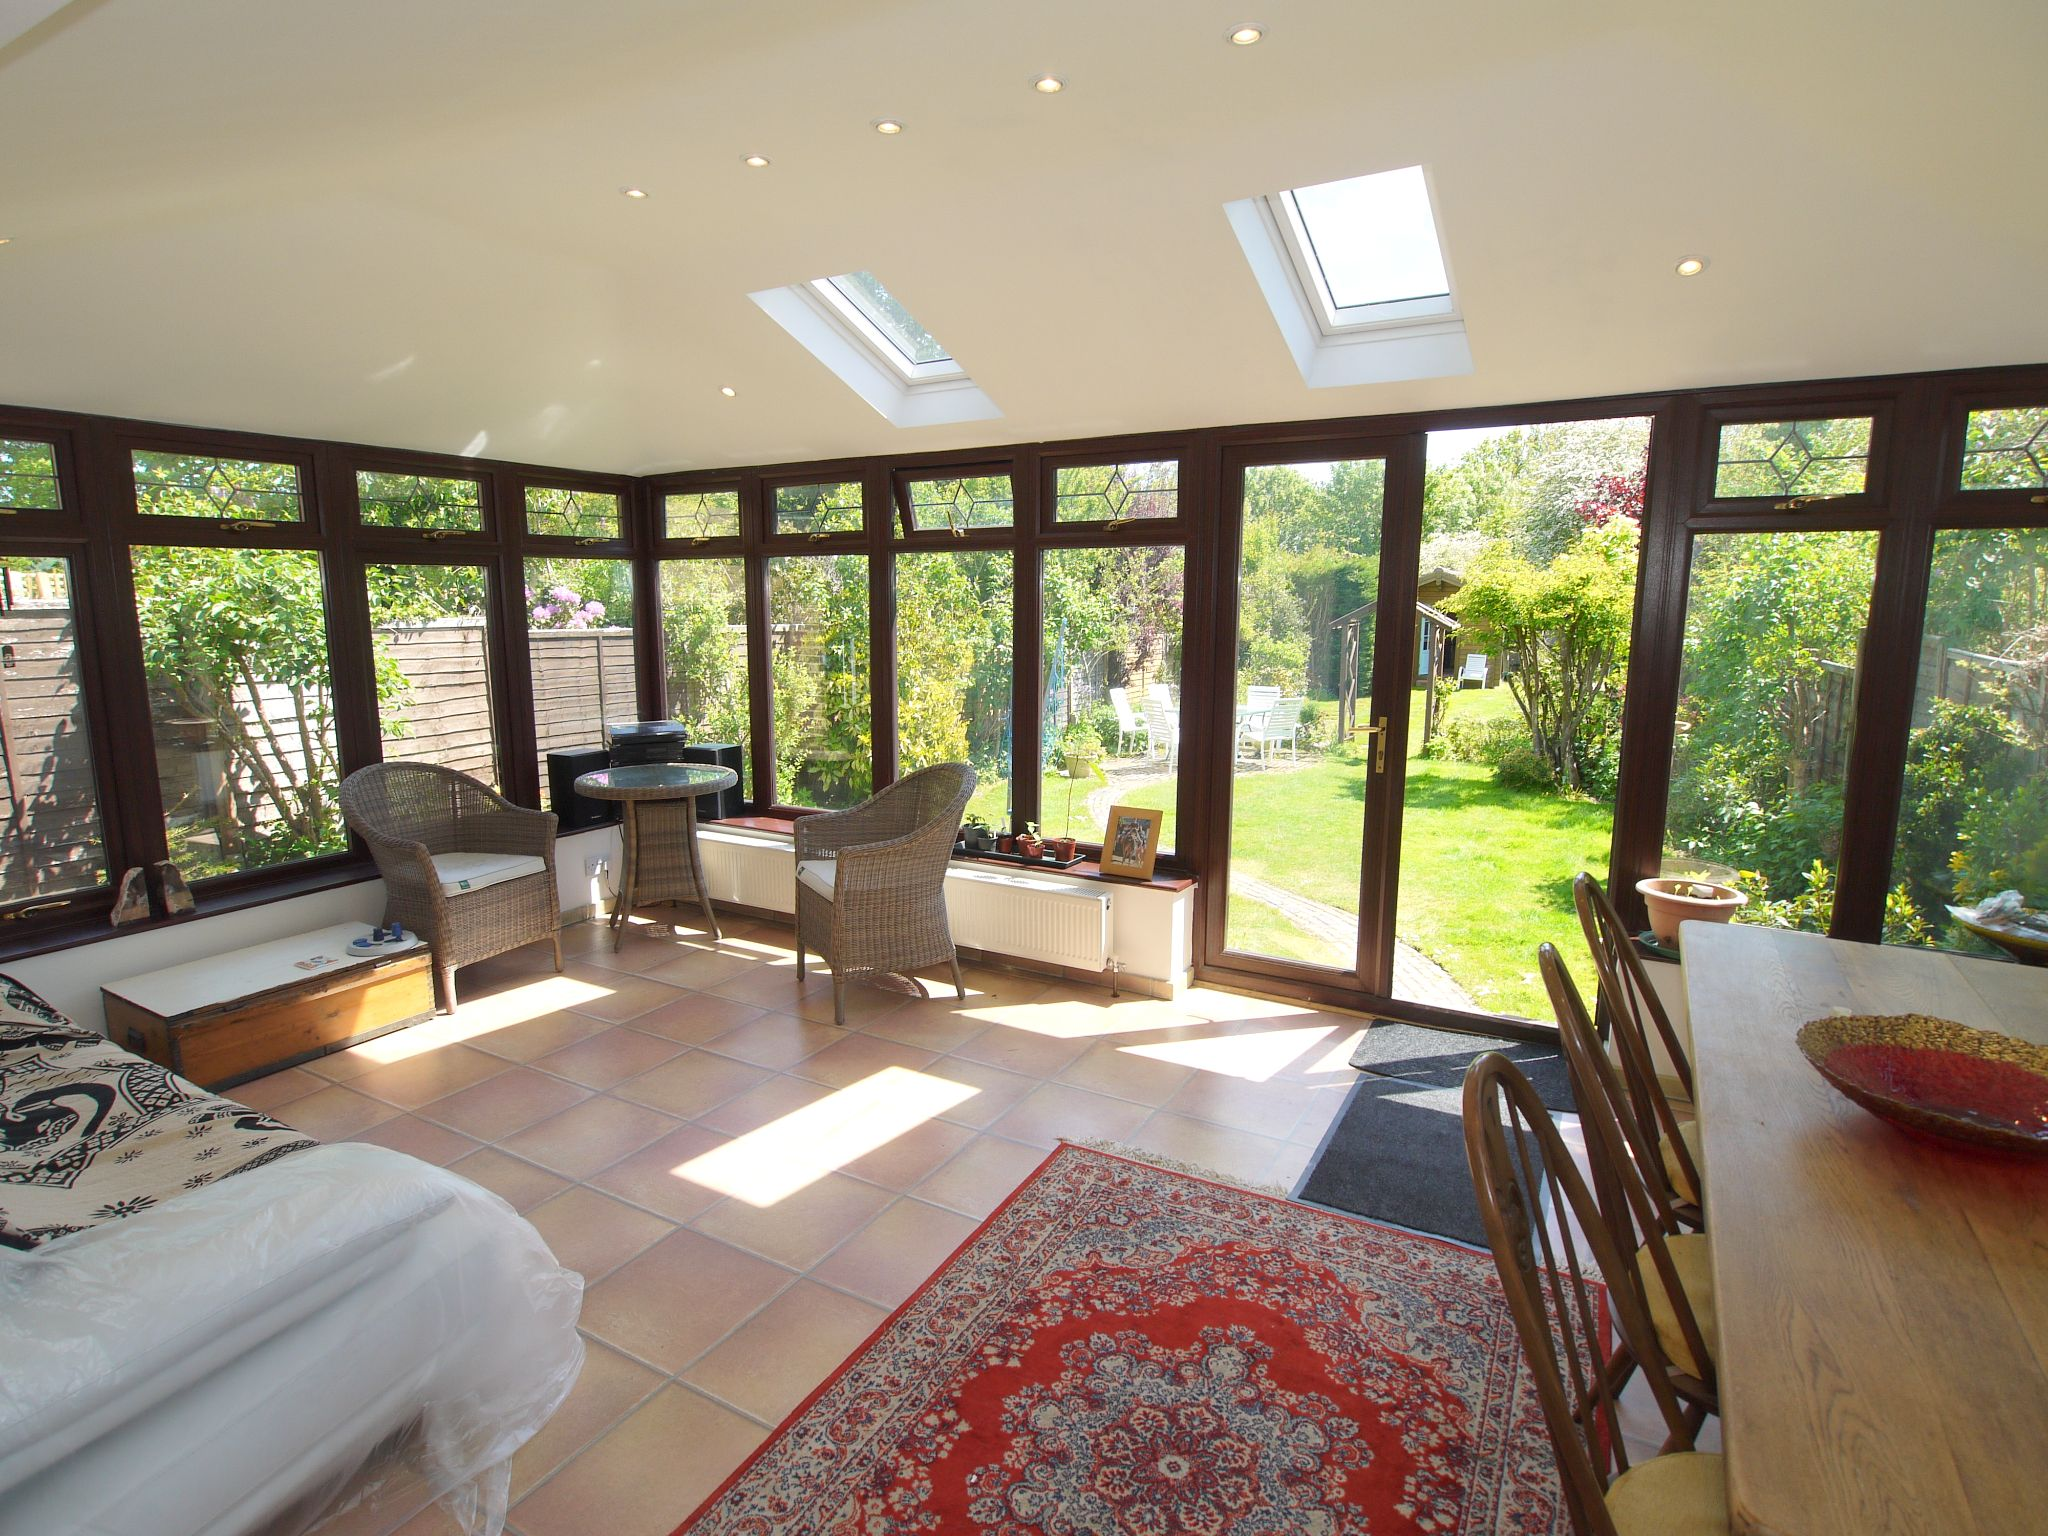 4 bedroom detached house For Sale in Sevenoaks - Photograph 3